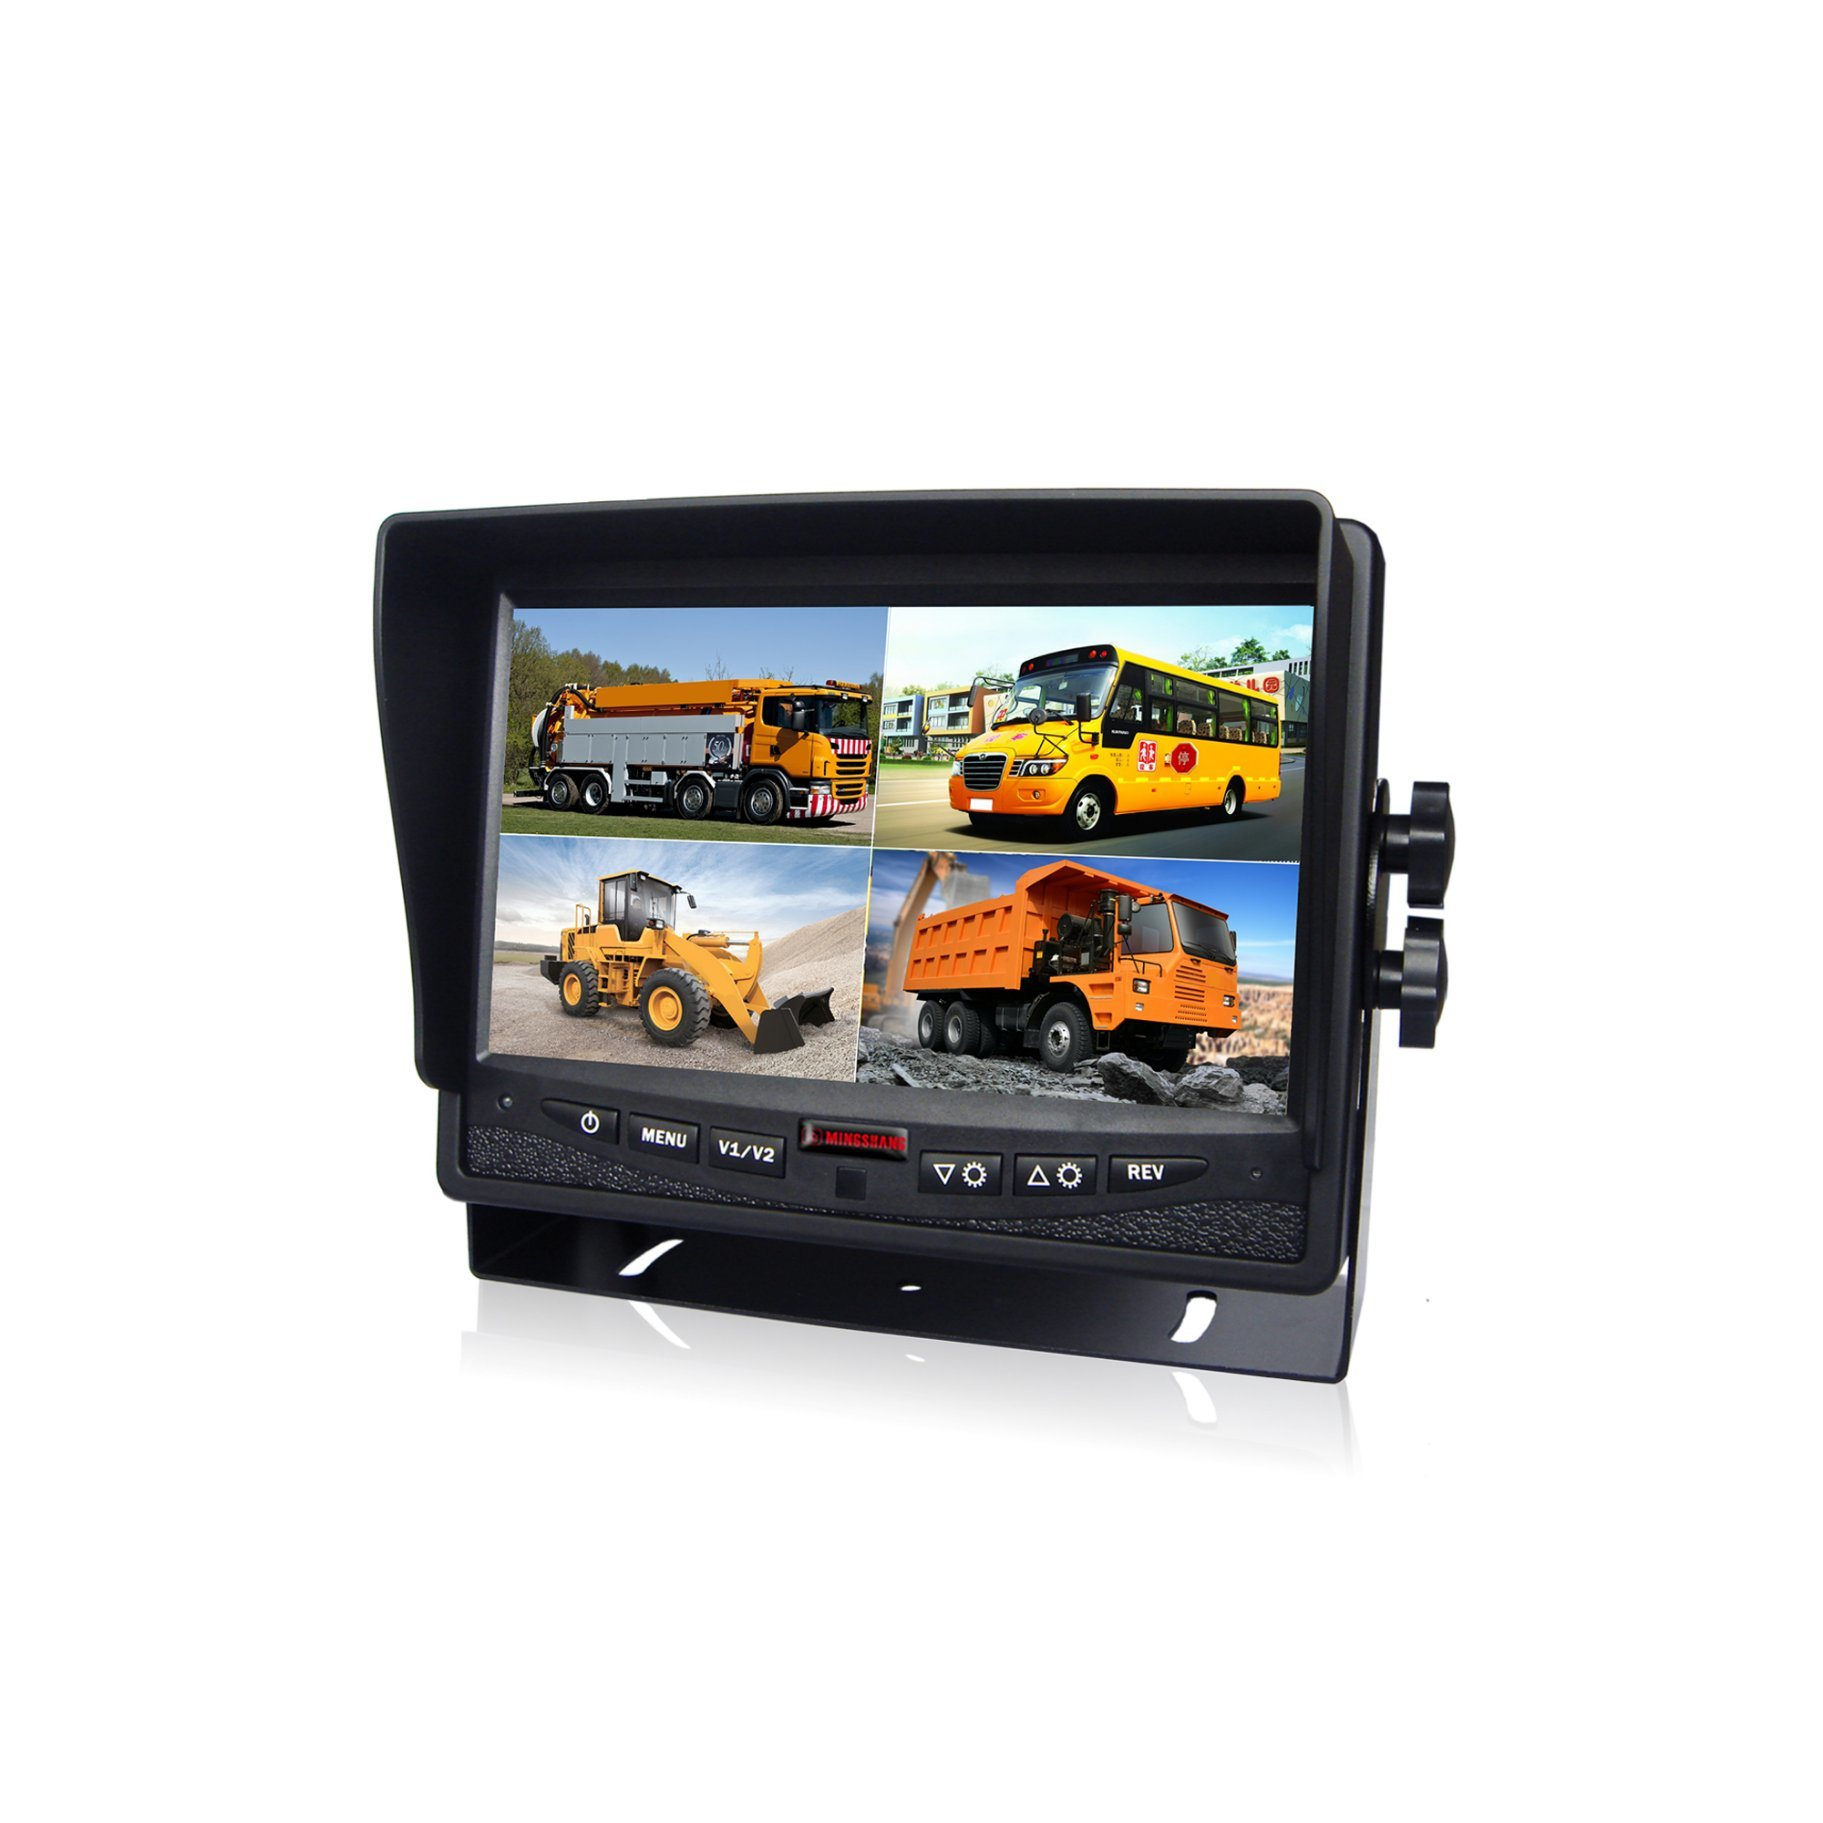 7inch Split Quad LCD Monitor Rear View Camera with Waterproof IP69k Camera for School Bus